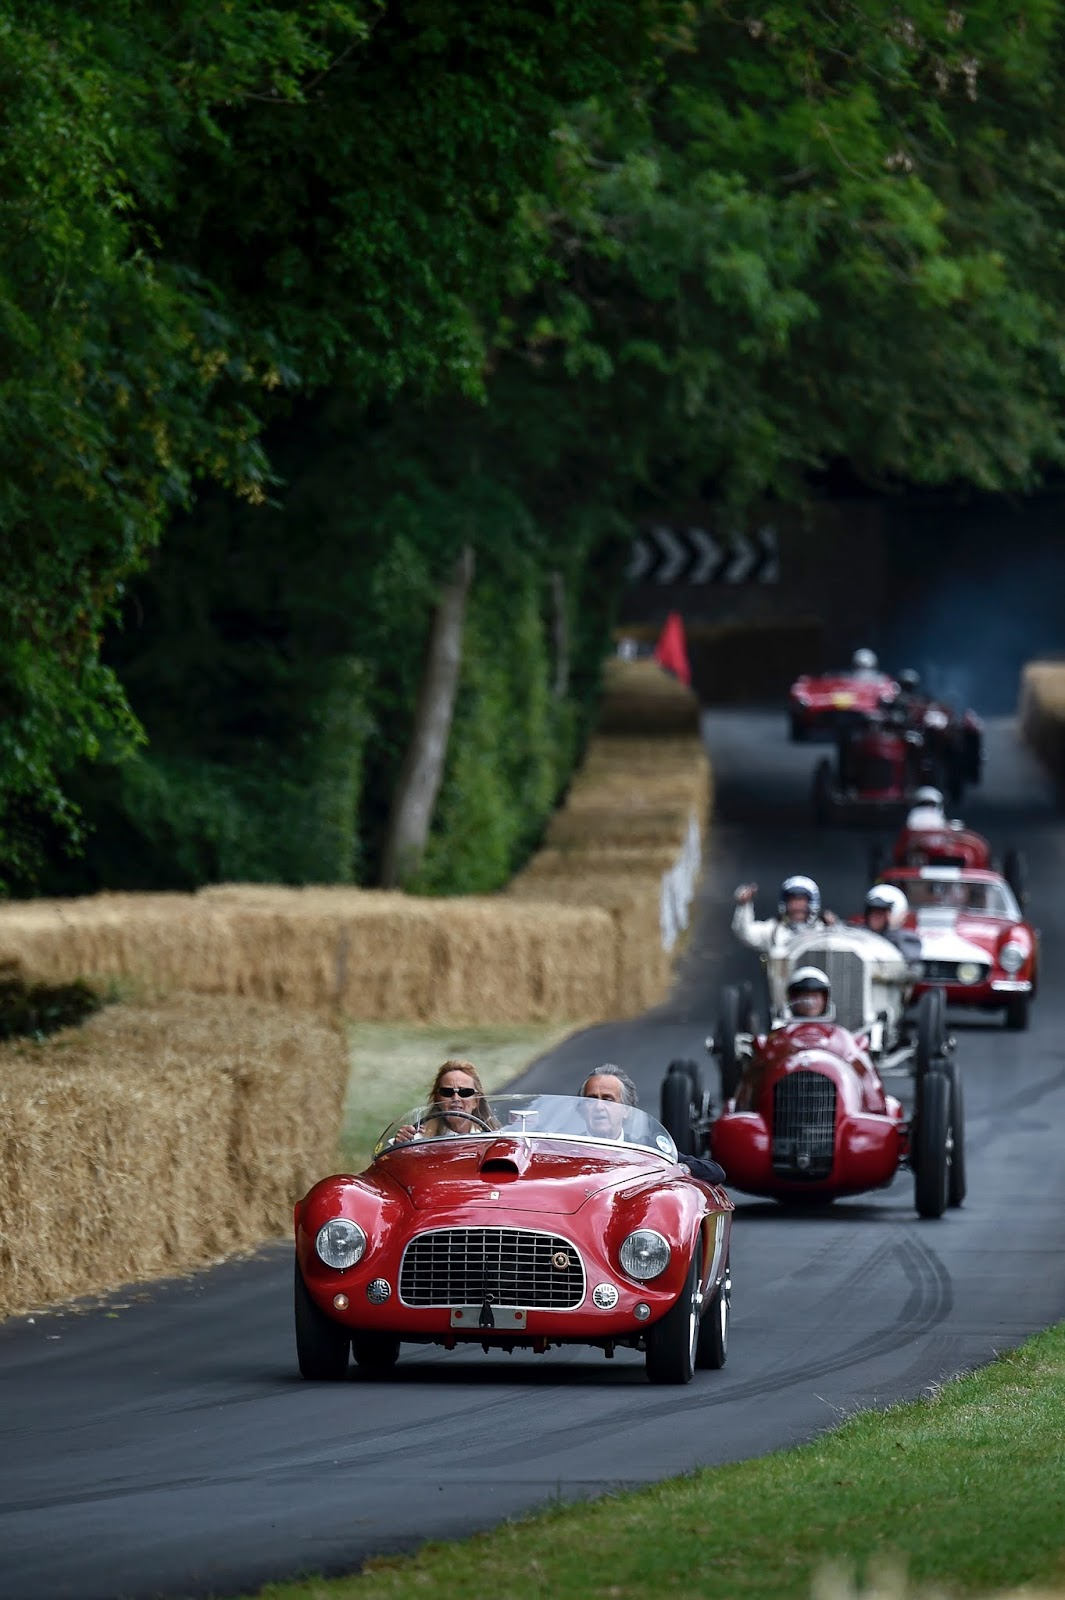 Goodwood Festival of Speed 2014: Ferrari